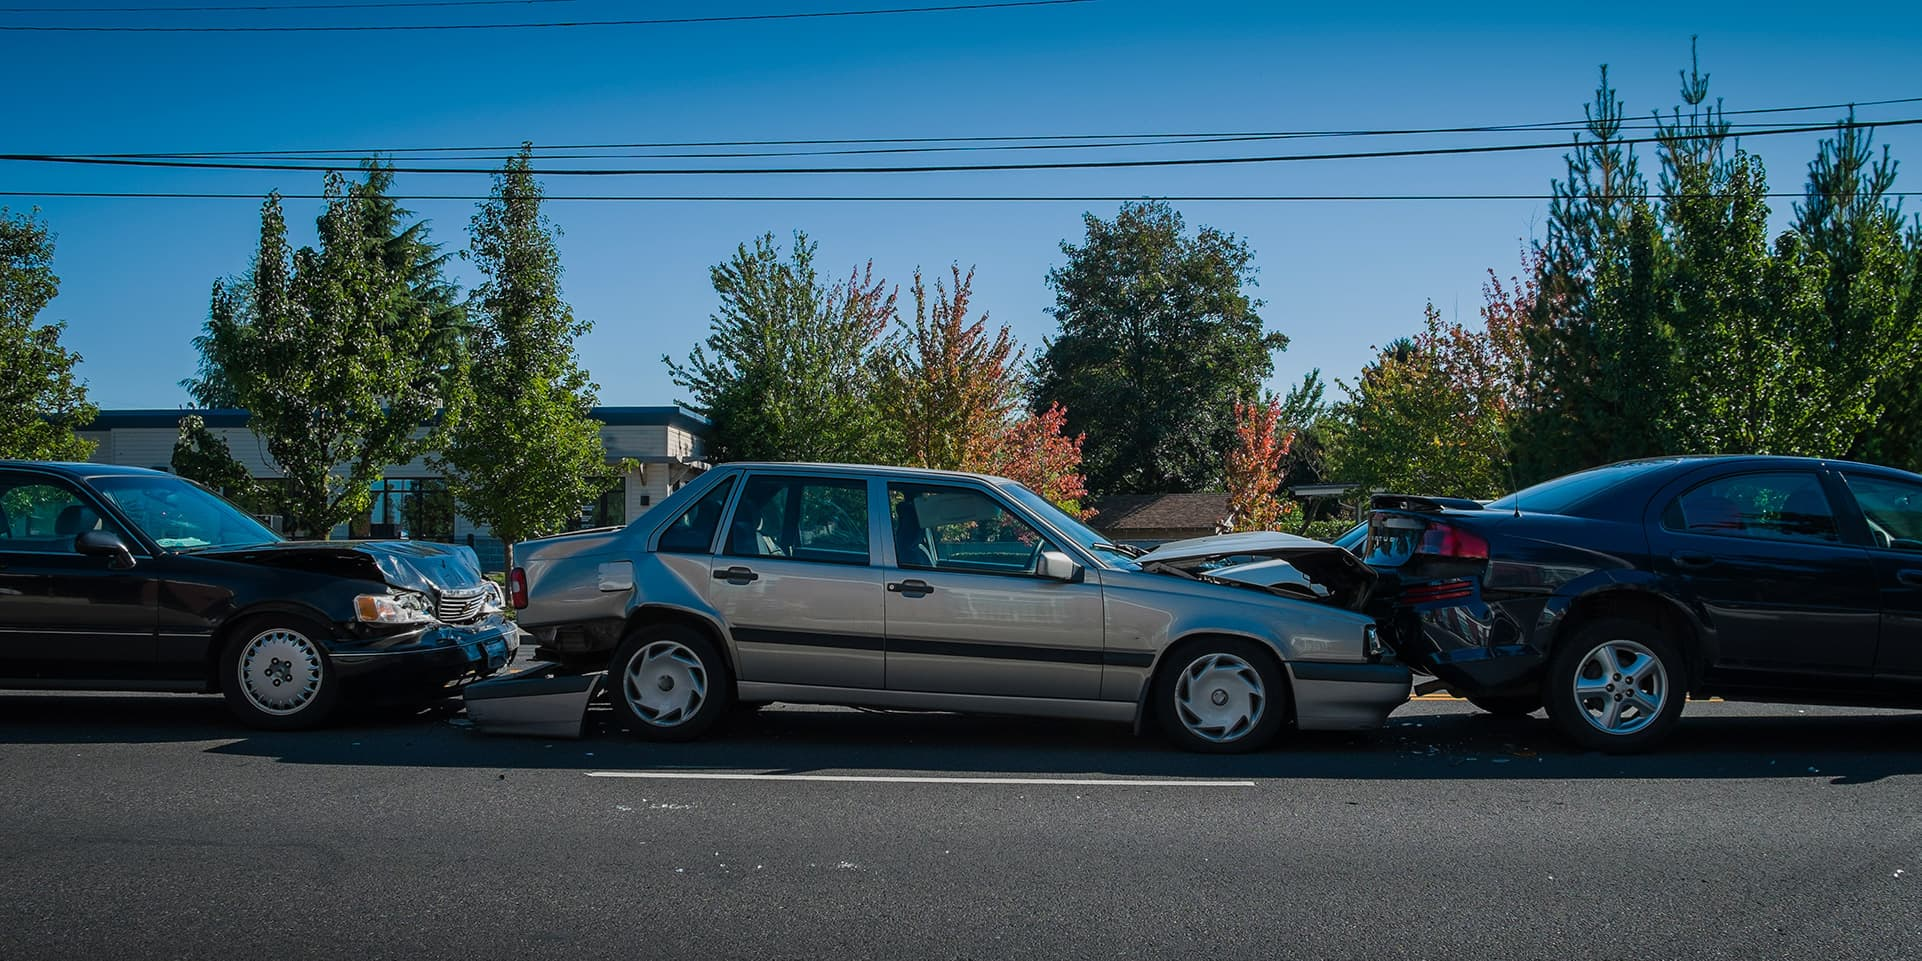 How do I File a Claim if I Have Been Injured in a Car Accident in Nova Scotia?